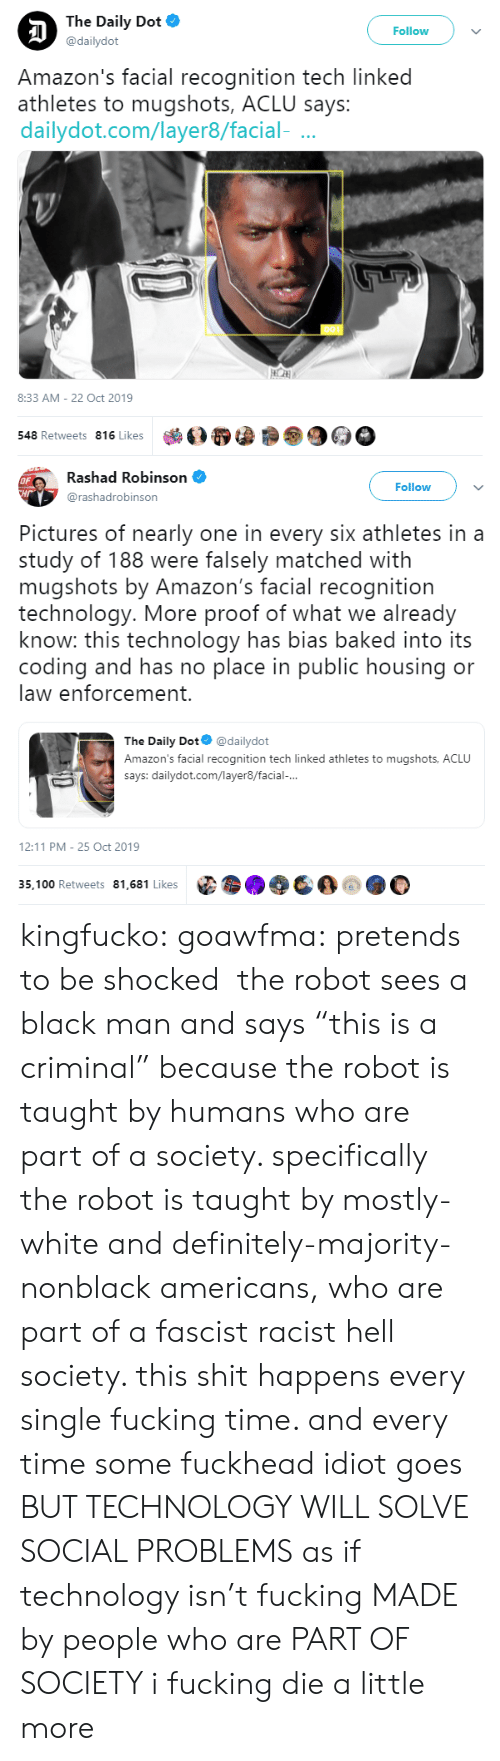 "Black Man: The Daily Dot  Follow  @dailydot  Amazon's facial recognition tech linked  athletes to mugshots, ACLU says:  dailydot.com/layer8/facial-  8:33 AM - 22 Oct 2019  548 Retweets 816 Likes   Rashad Robinson  OF  CHr  Follow  @rashadrobinson  Pictures of nearly one in every six athletes in a  study of 188 were falsely matched with  mugshots by Amazon's facial recognition  technology. More proof of what we already  know: this technology has bias baked into its  coding and has no place in public housing or  law enforcement.  The Daily Dot  @dailydot  Amazon's facial recognition tech linked athletes to mugshots, ACLU  says: dailydot.com/layer8/facial-...  12:11 PM 25 Oct 2019  35,100 Retweets 81,681 Likes kingfucko:  goawfma: pretends to be shocked  the robot sees a black man and says ""this is a criminal"" because the robot is taught by humans who are part of a society. specifically the robot is taught by mostly-white and definitely-majority-nonblack americans, who are part of a fascist racist hell society. this shit happens every single fucking time. and every time some fuckhead idiot goes BUT TECHNOLOGY WILL SOLVE SOCIAL PROBLEMS as if technology isn't fucking MADE by people who are PART OF SOCIETY i fucking die a little more"